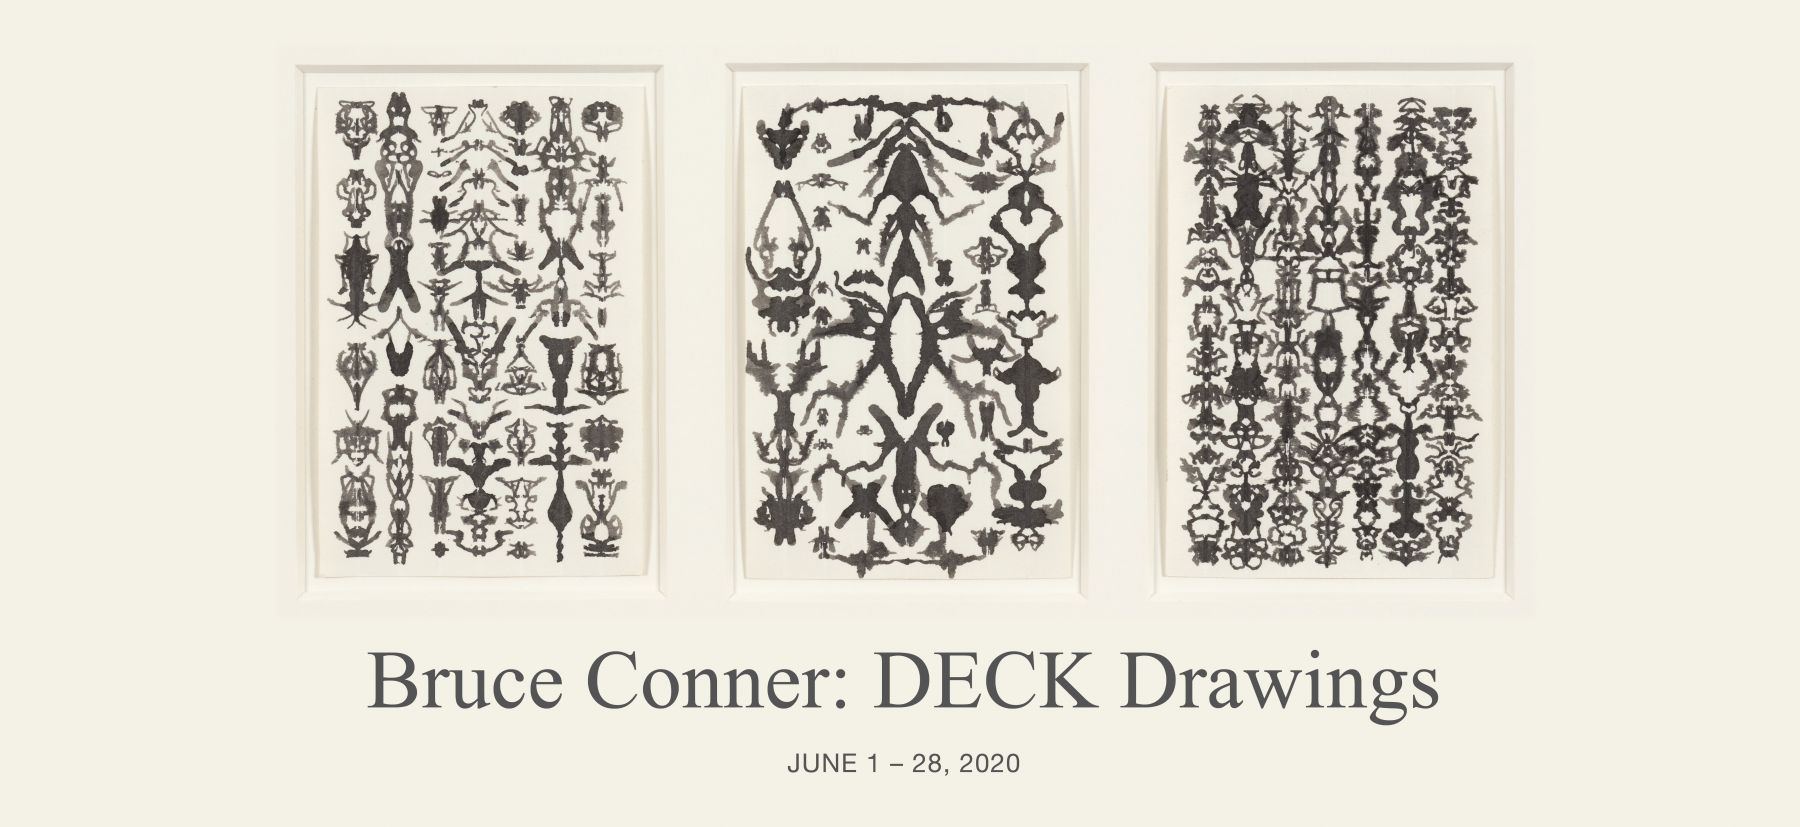 Bruce Conner TRIO 52-19-1, 1975 ink each card: 6 x 4 in. (15.2 x 10.2 cm) frame: 13 1/4 x 21 1/4 in. (33.7 x 54 cm)